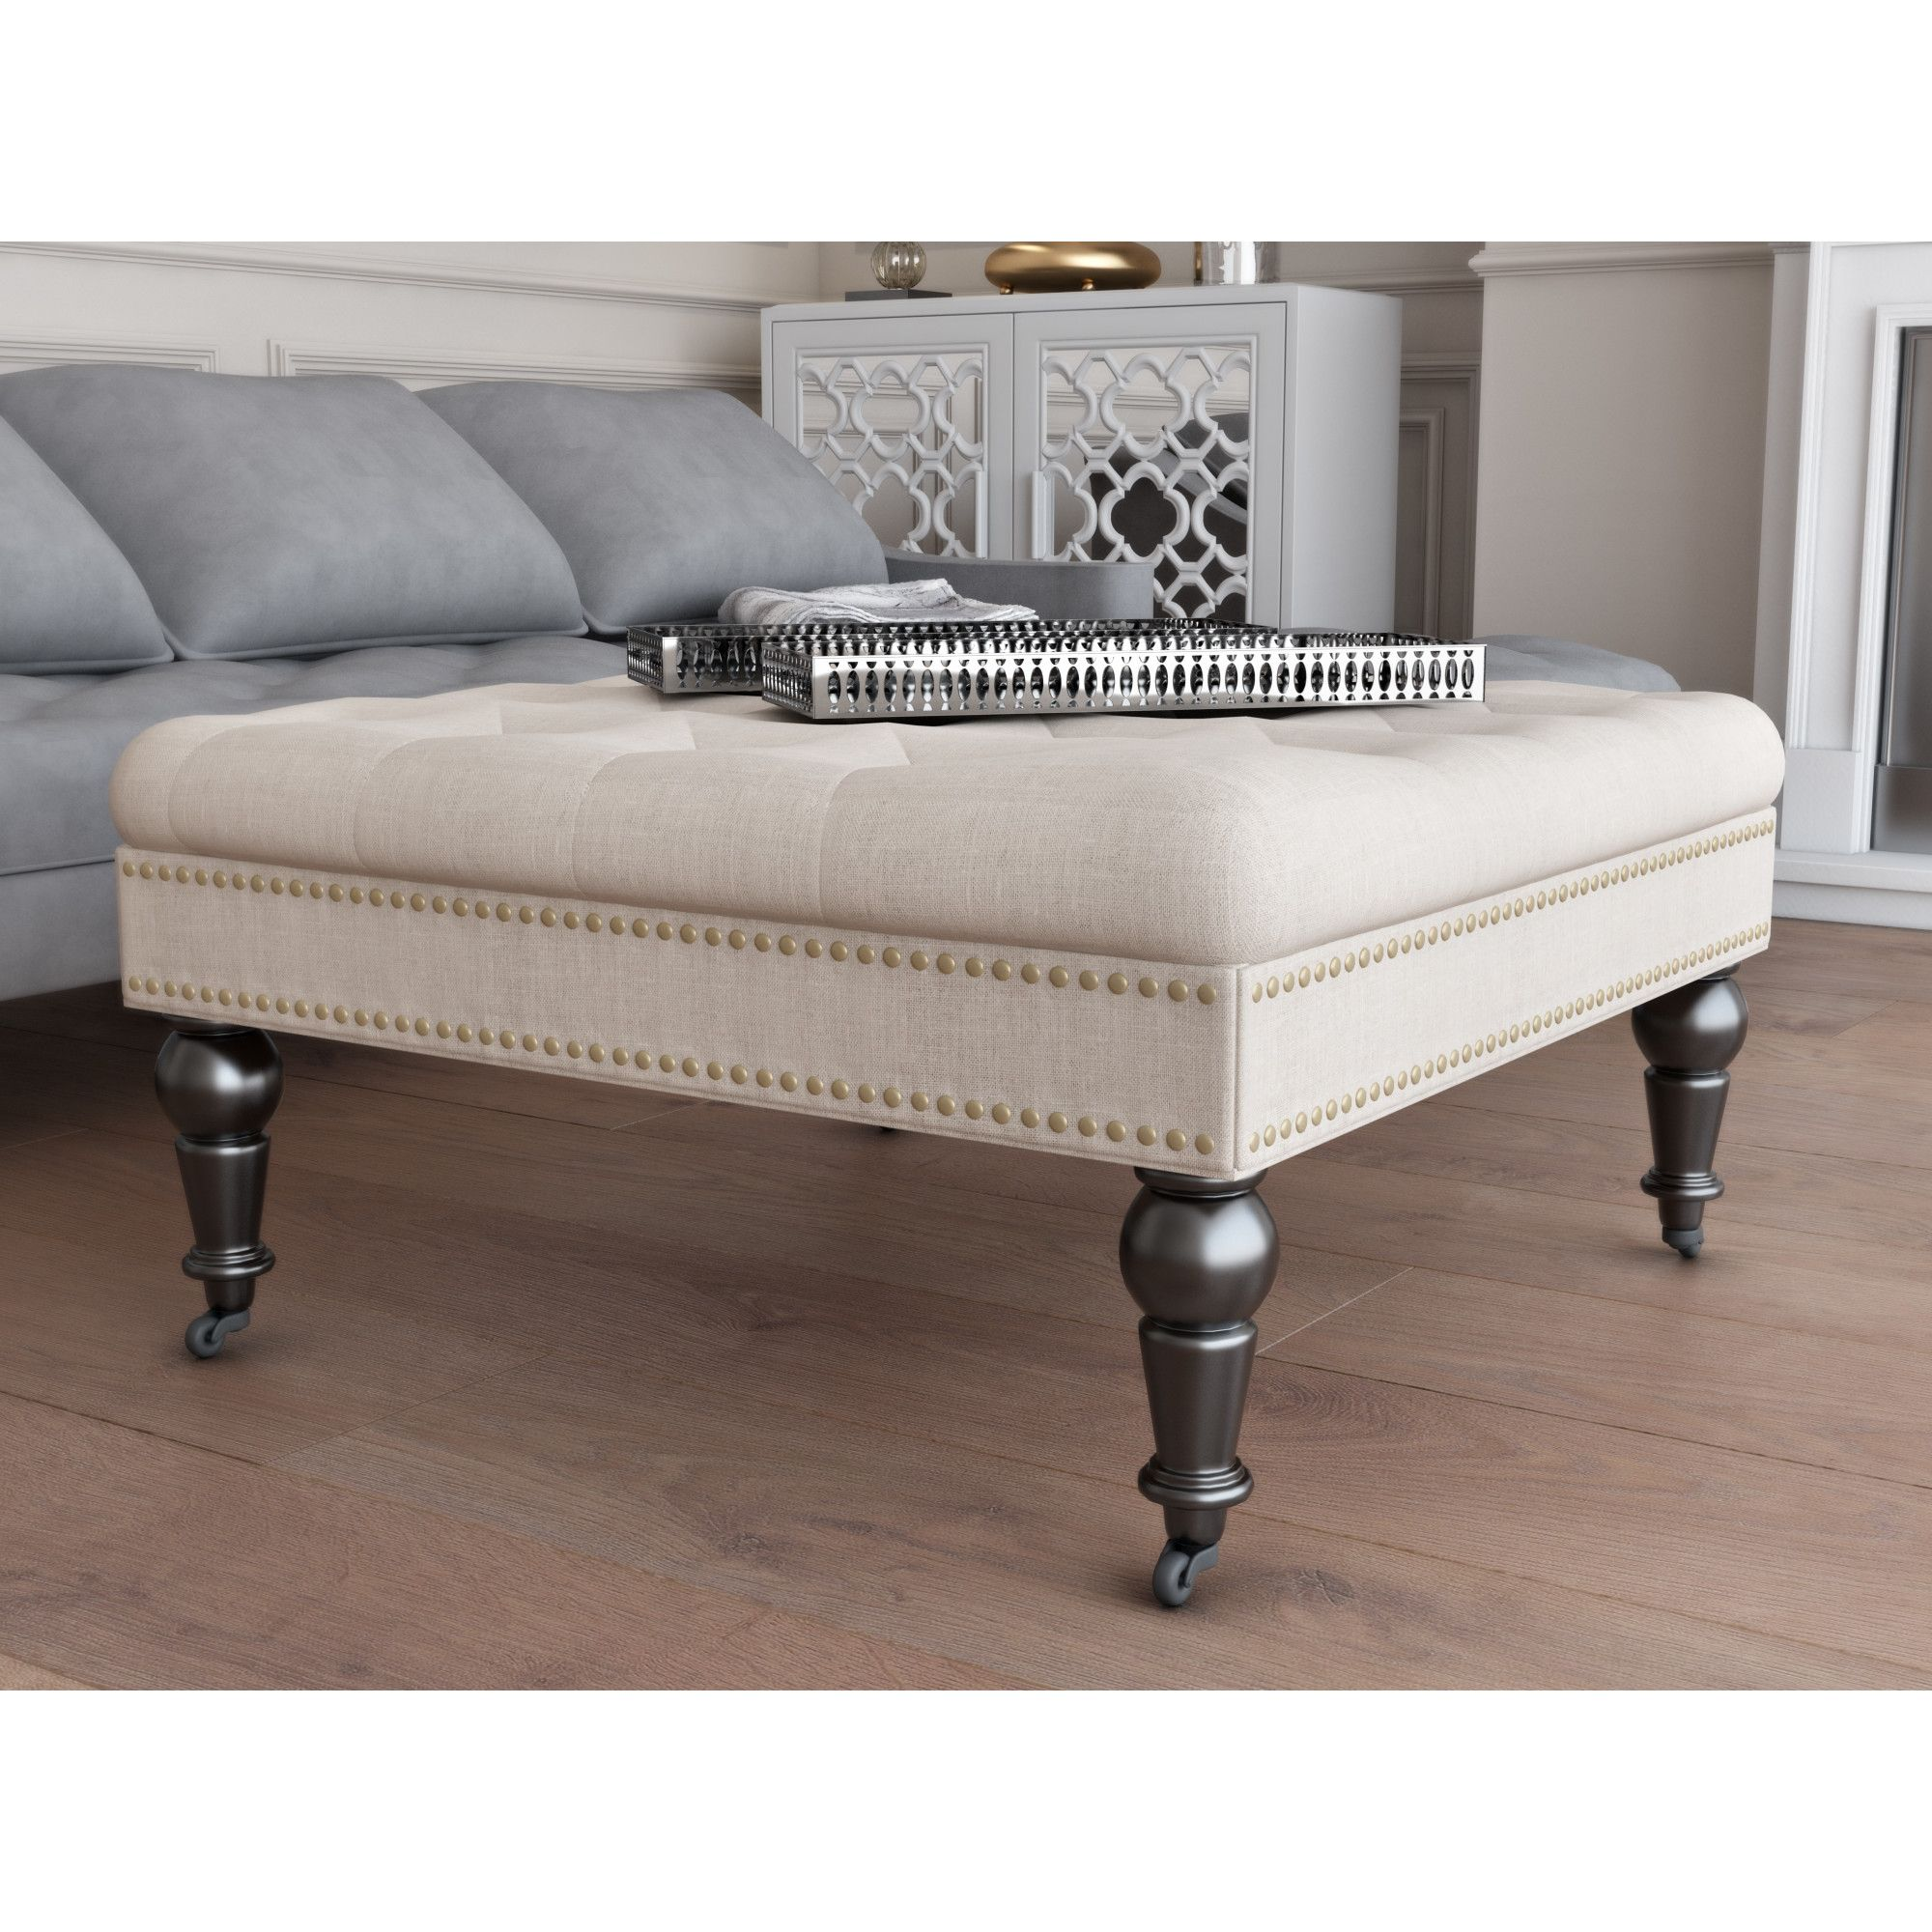 Awesome House Of Hampton Gahn Square Tufted Ottoman 132 Home Caraccident5 Cool Chair Designs And Ideas Caraccident5Info